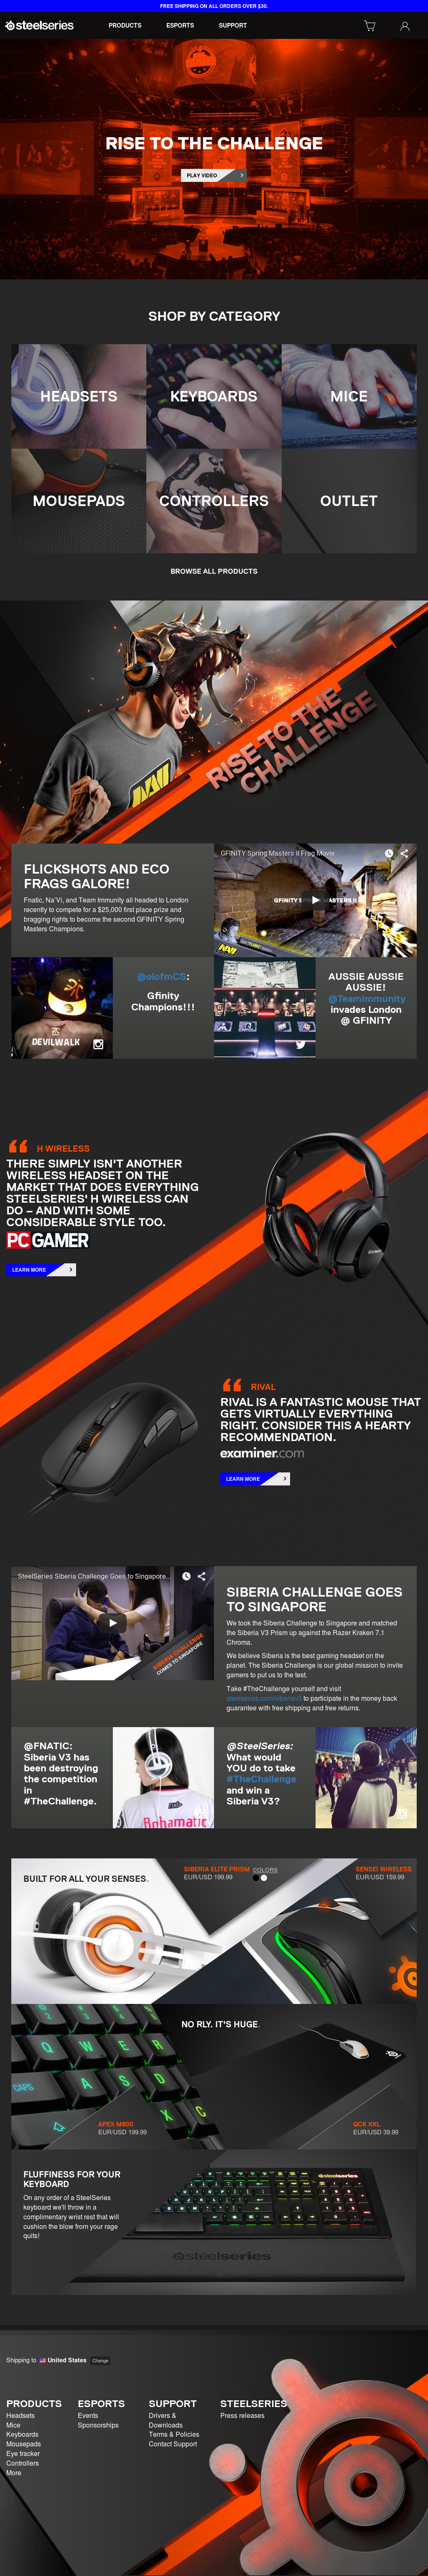 SteelSeries Competitors, Revenue and Employees - Owler